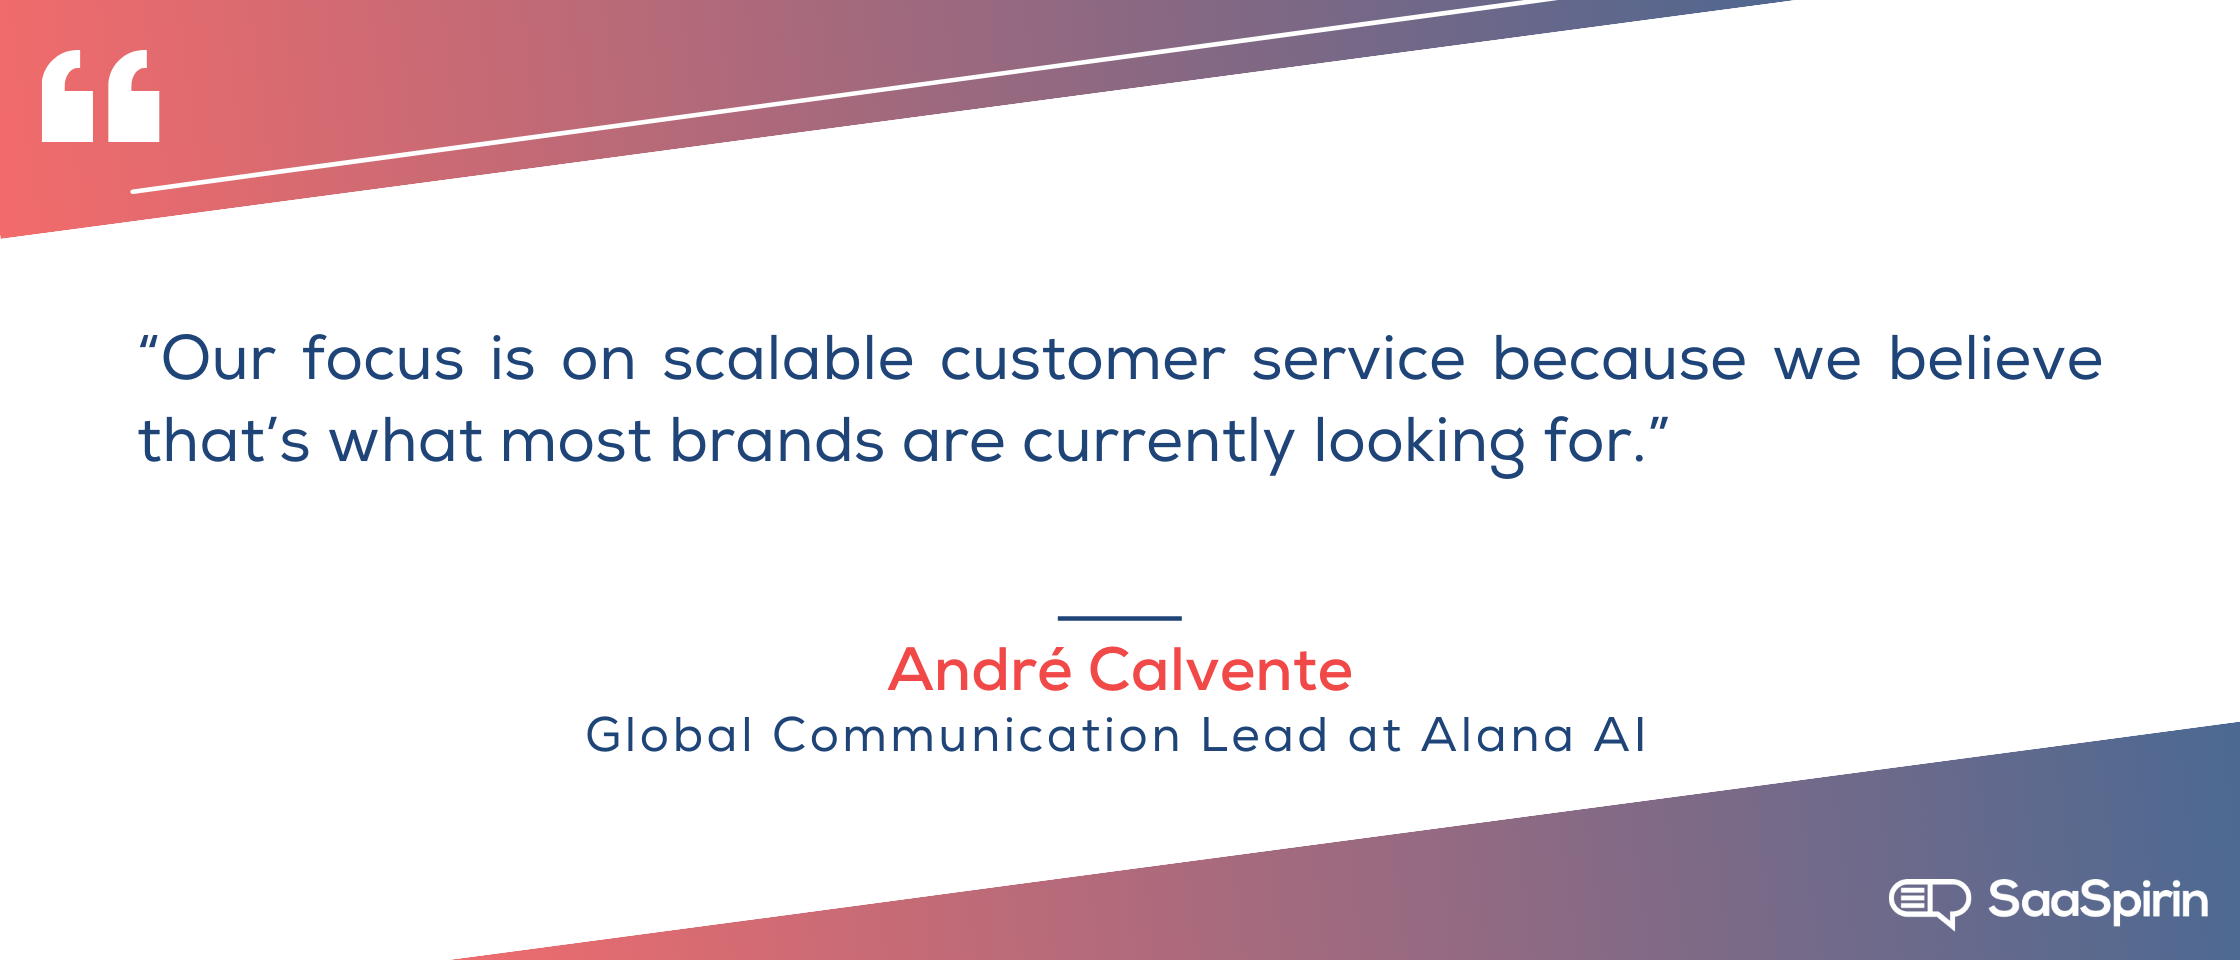 Our-focus-is-on-scalable-customer-service-because-we-believe-thats-what-most-brands-are-currently-looking-for.png